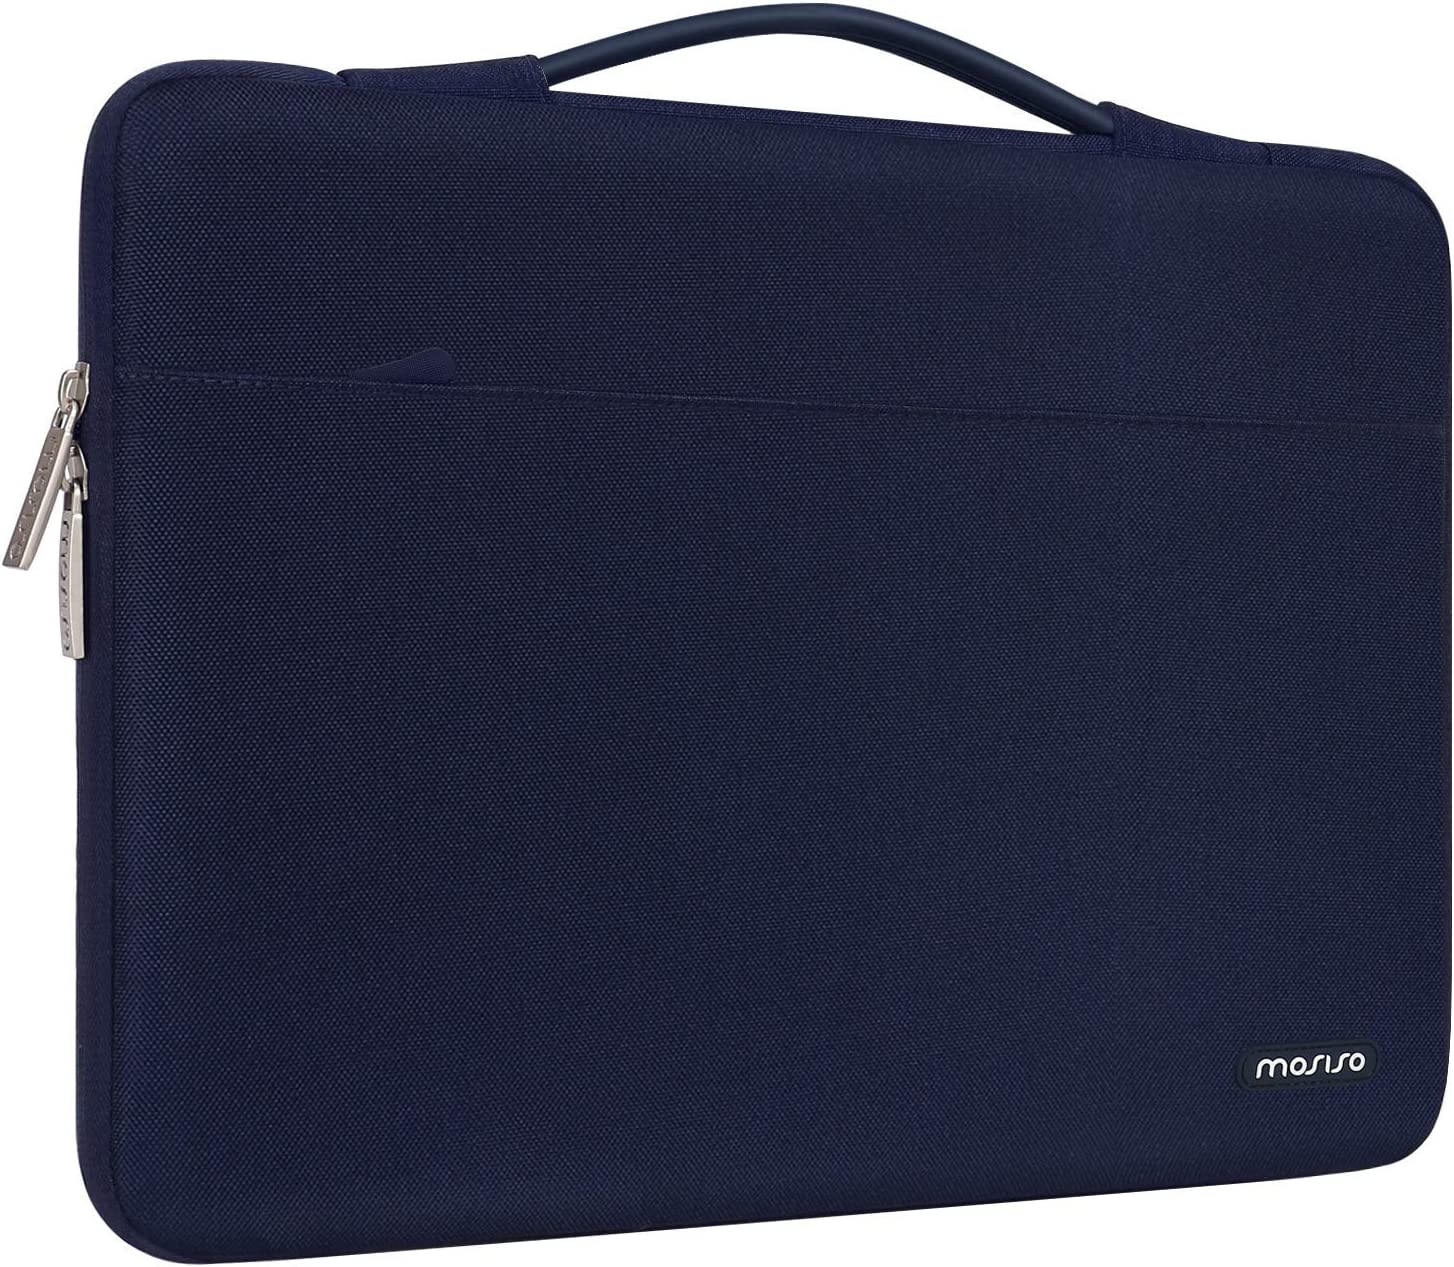 MOSISO Laptop Sleeve 360 Protective Case Bag Compatible with MacBook Pro 16 inch,15 15.4 15.6 inch Dell Lenovo HP Asus Acer Samsung Sony Chromebook,Polyester Briefcase with Trolley Belt, Navy Blue